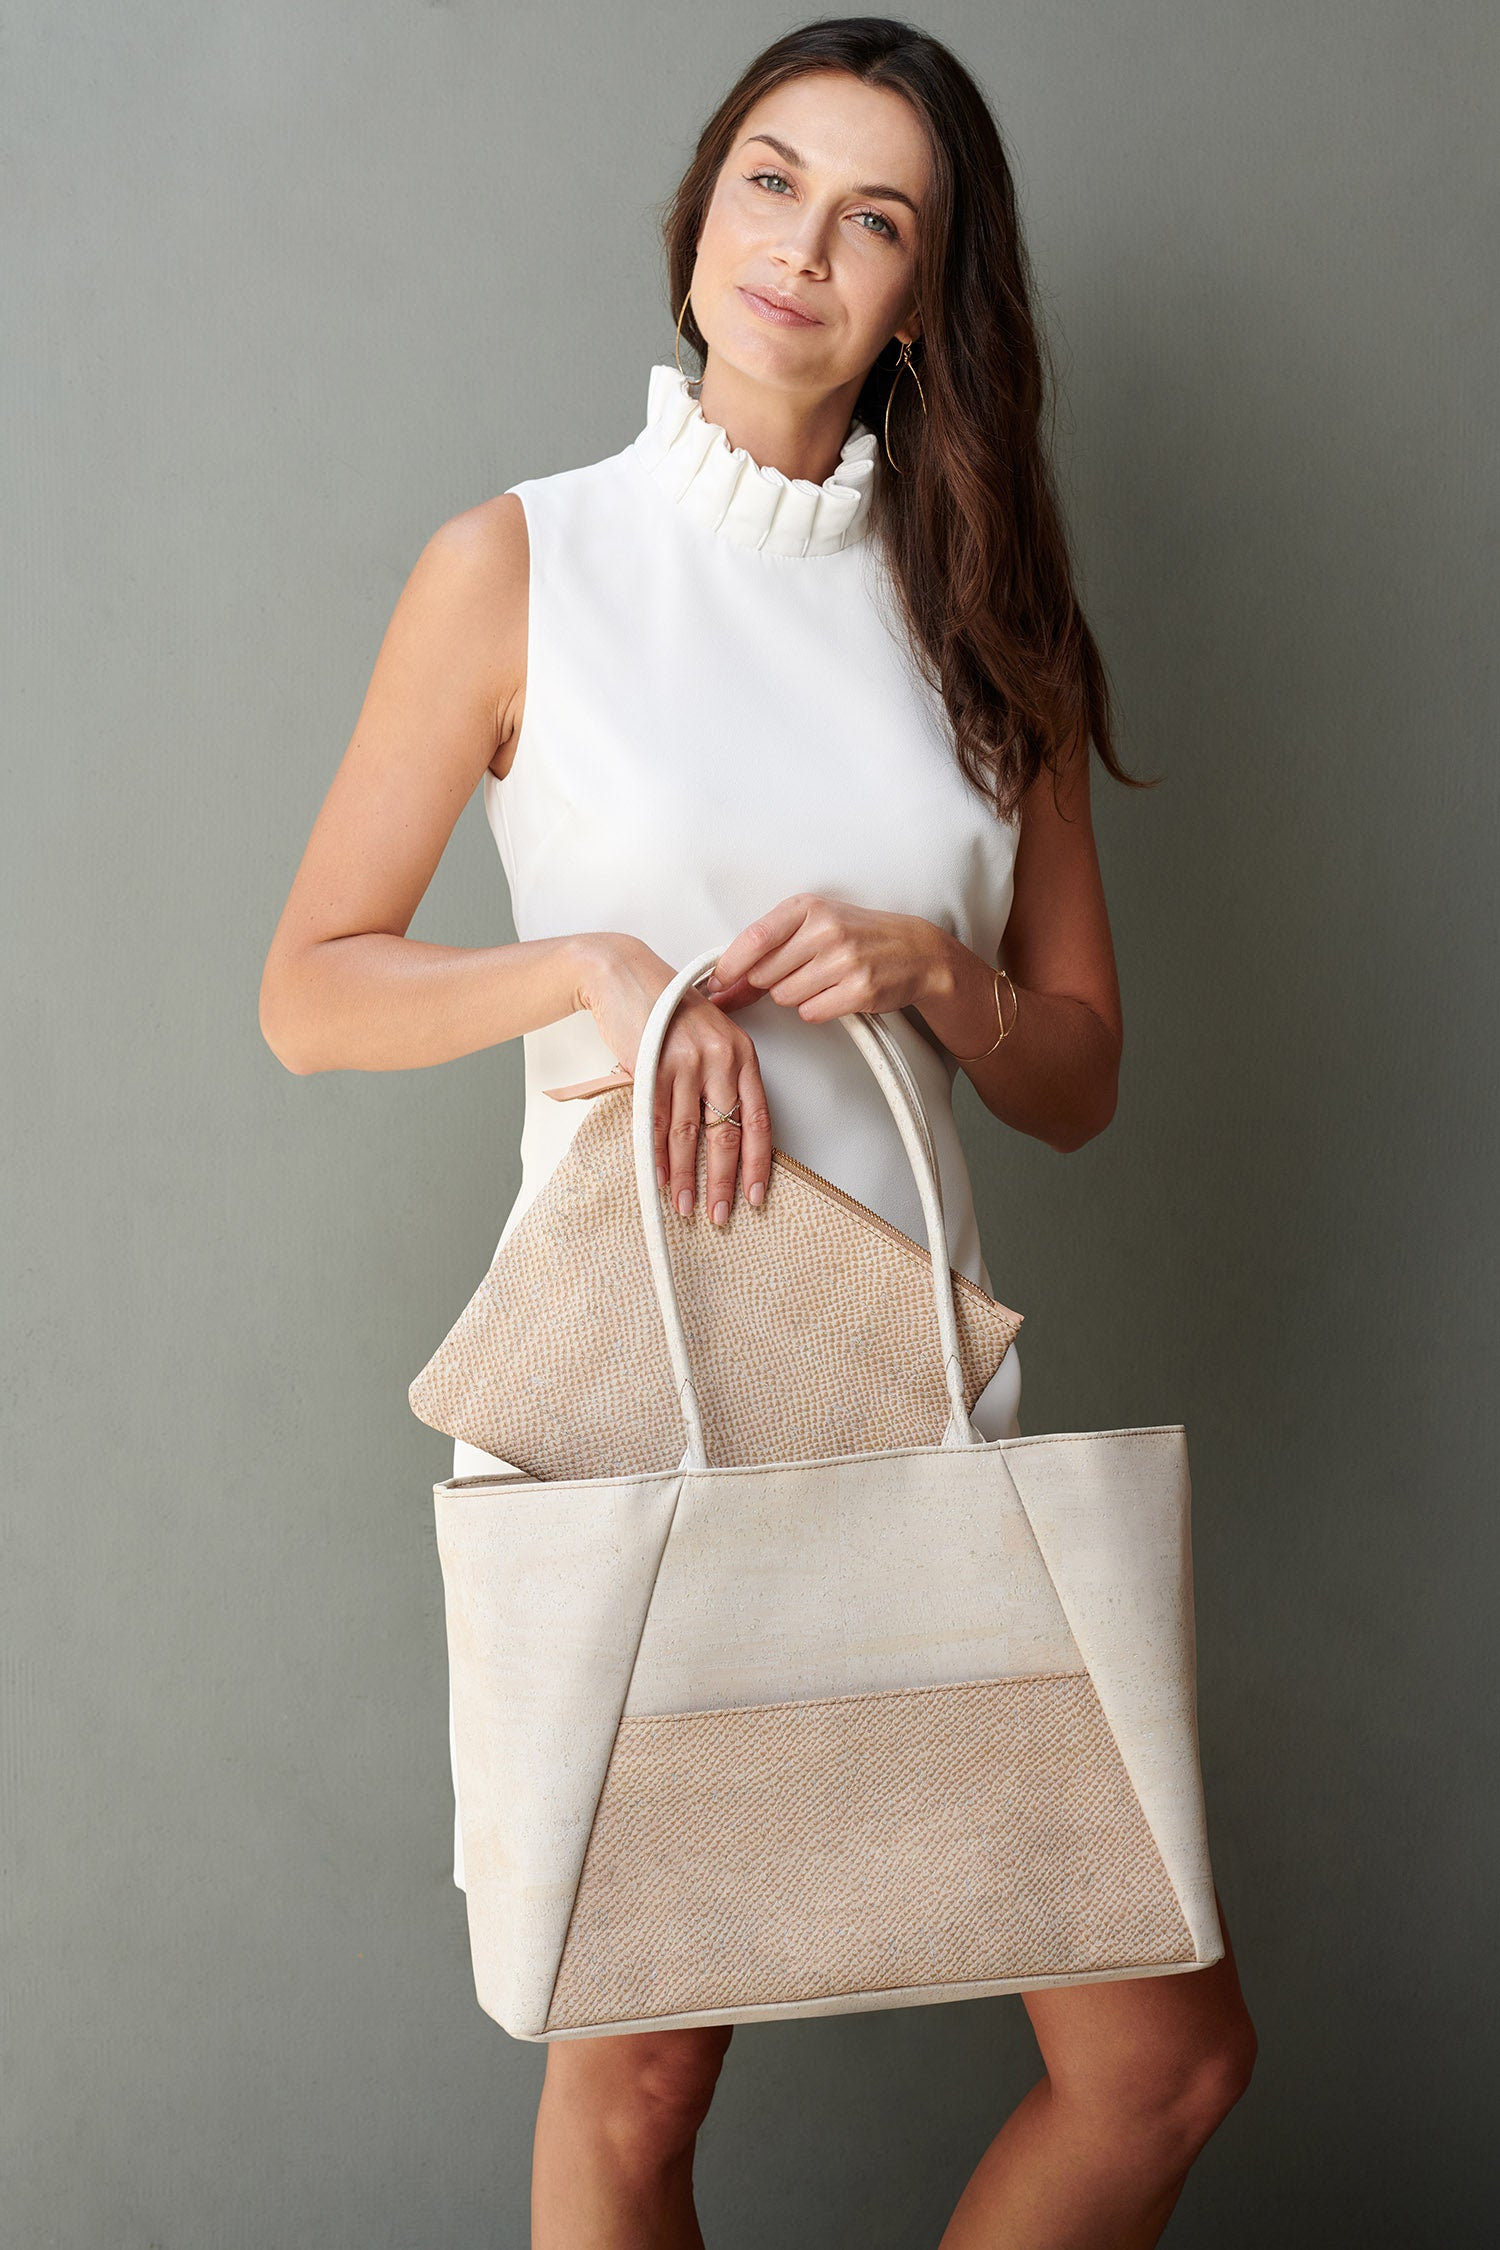 washable tote bag